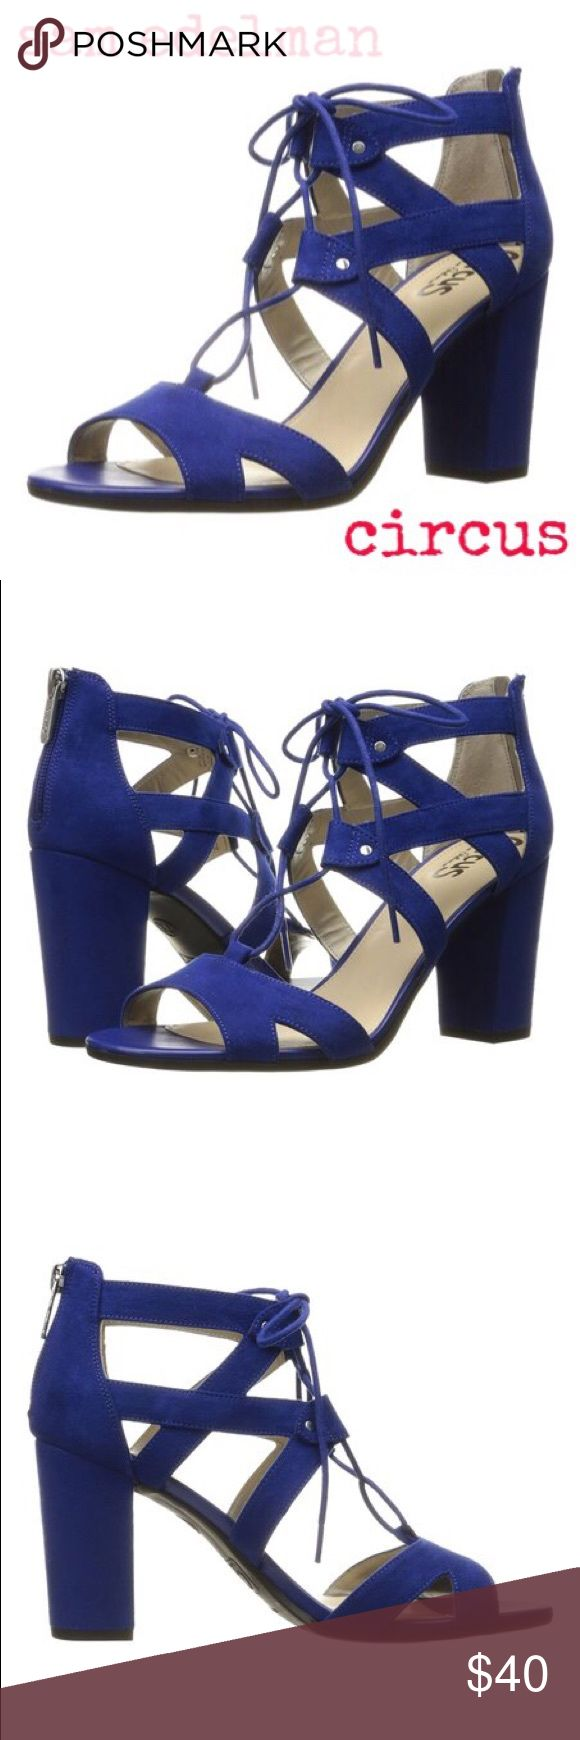 Sam Edelman Nautical Sandals Sam Edelman Circus Nautical Blue Emilia Sandal A towering heel heightens the silhouette of this trend-right lace-up sandal boasting a back zip closure for on-the-go ease.  3.5'' heel Lace-up. Lightly cushioned footbed.  Man-made suede. Worn once indoors. Circus by Sam Edelman Shoes